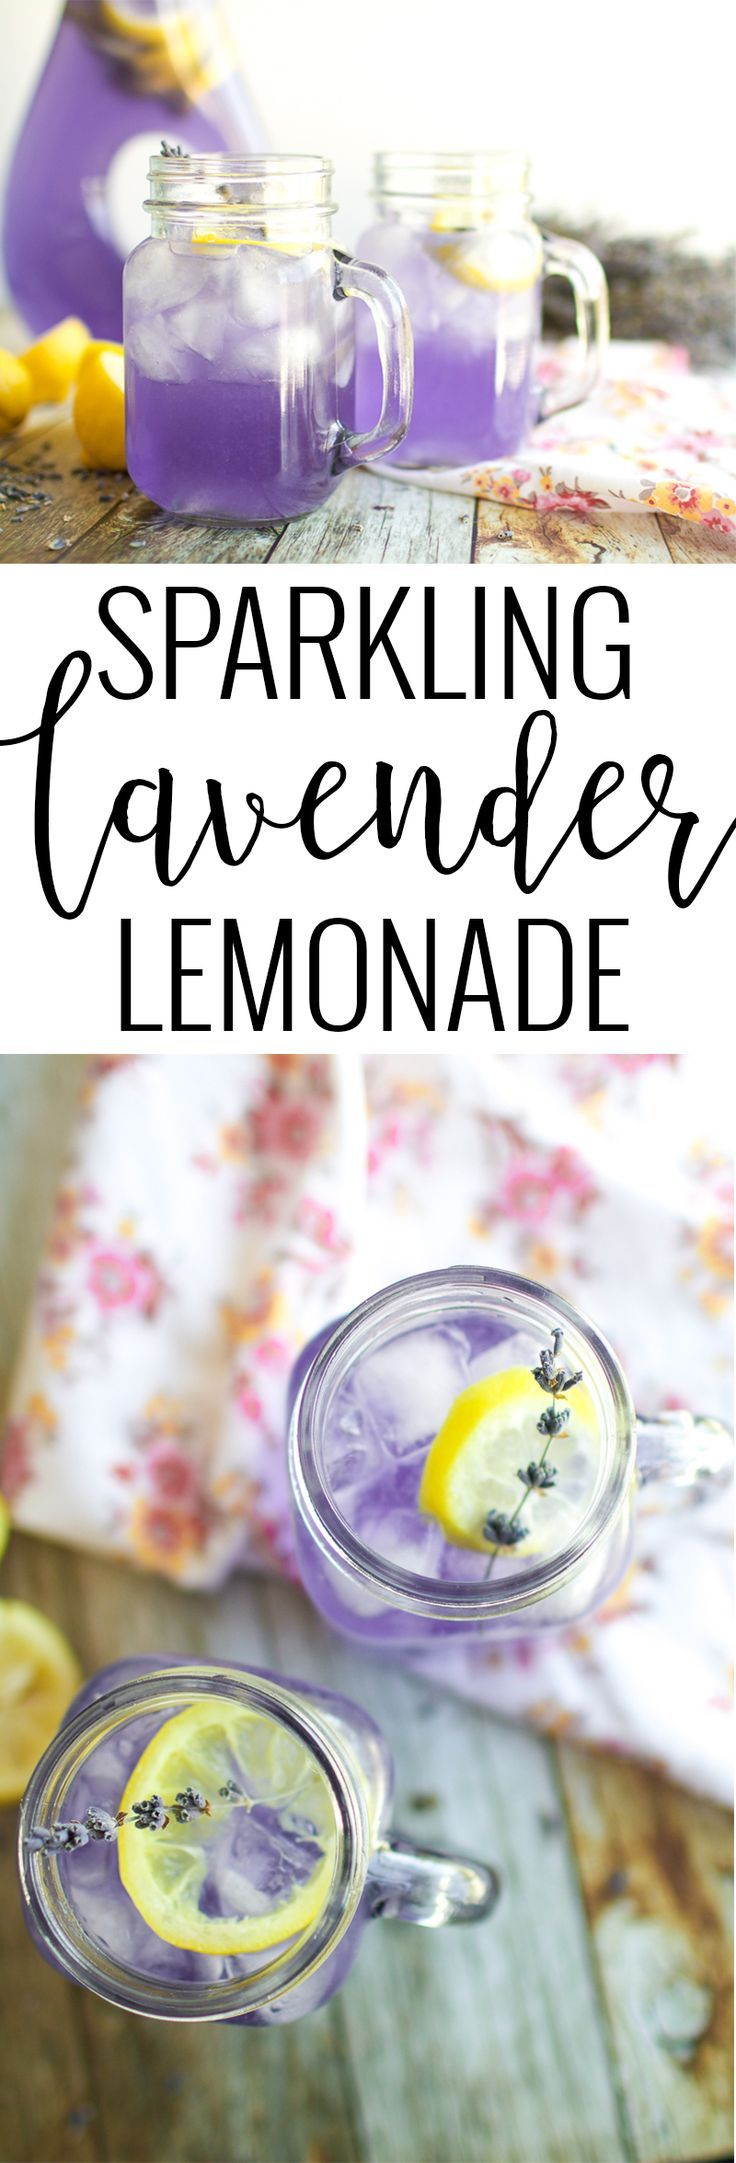 Sparkling Lavender Lemonade | lemonade recipes | homemade lemonade recipe | how to make homemade lemonade | lavender flavored recipes | recipes using lavender | summer drink recipes | refreshing drink recipes | homemade drink recipes | family friendly dri